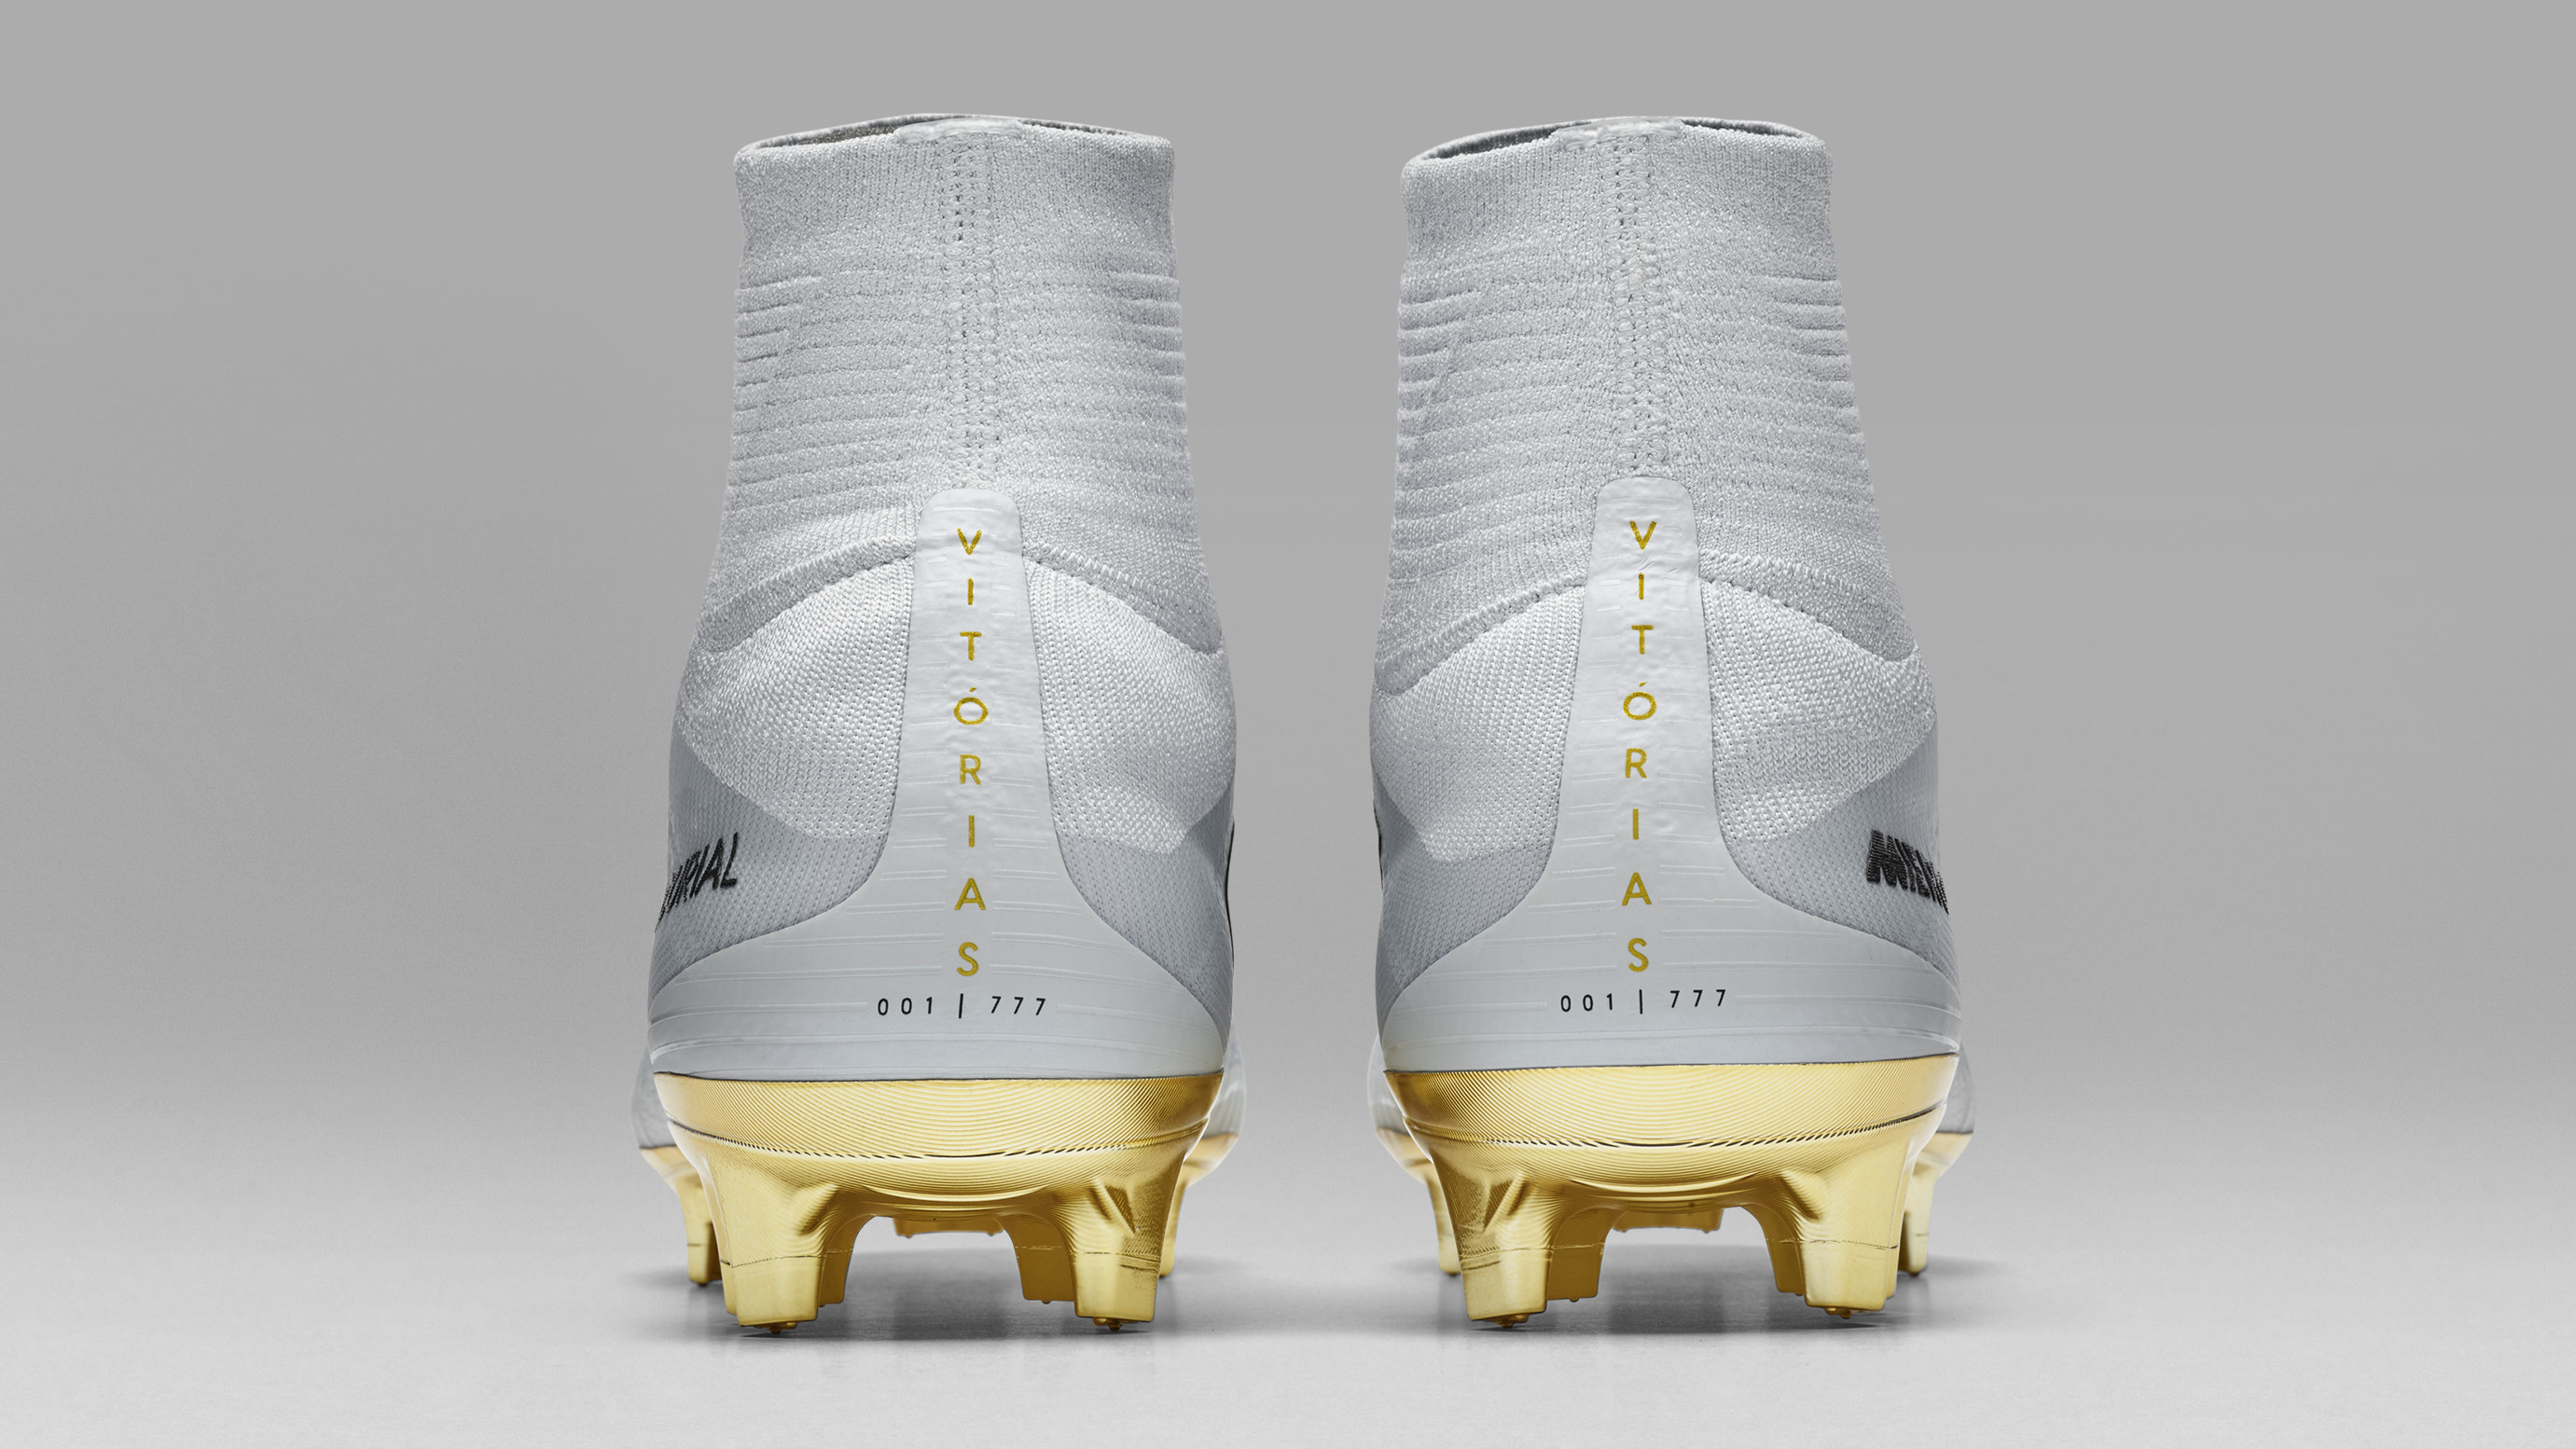 Nike Mercurial Superfly CR7 Vitorias heel